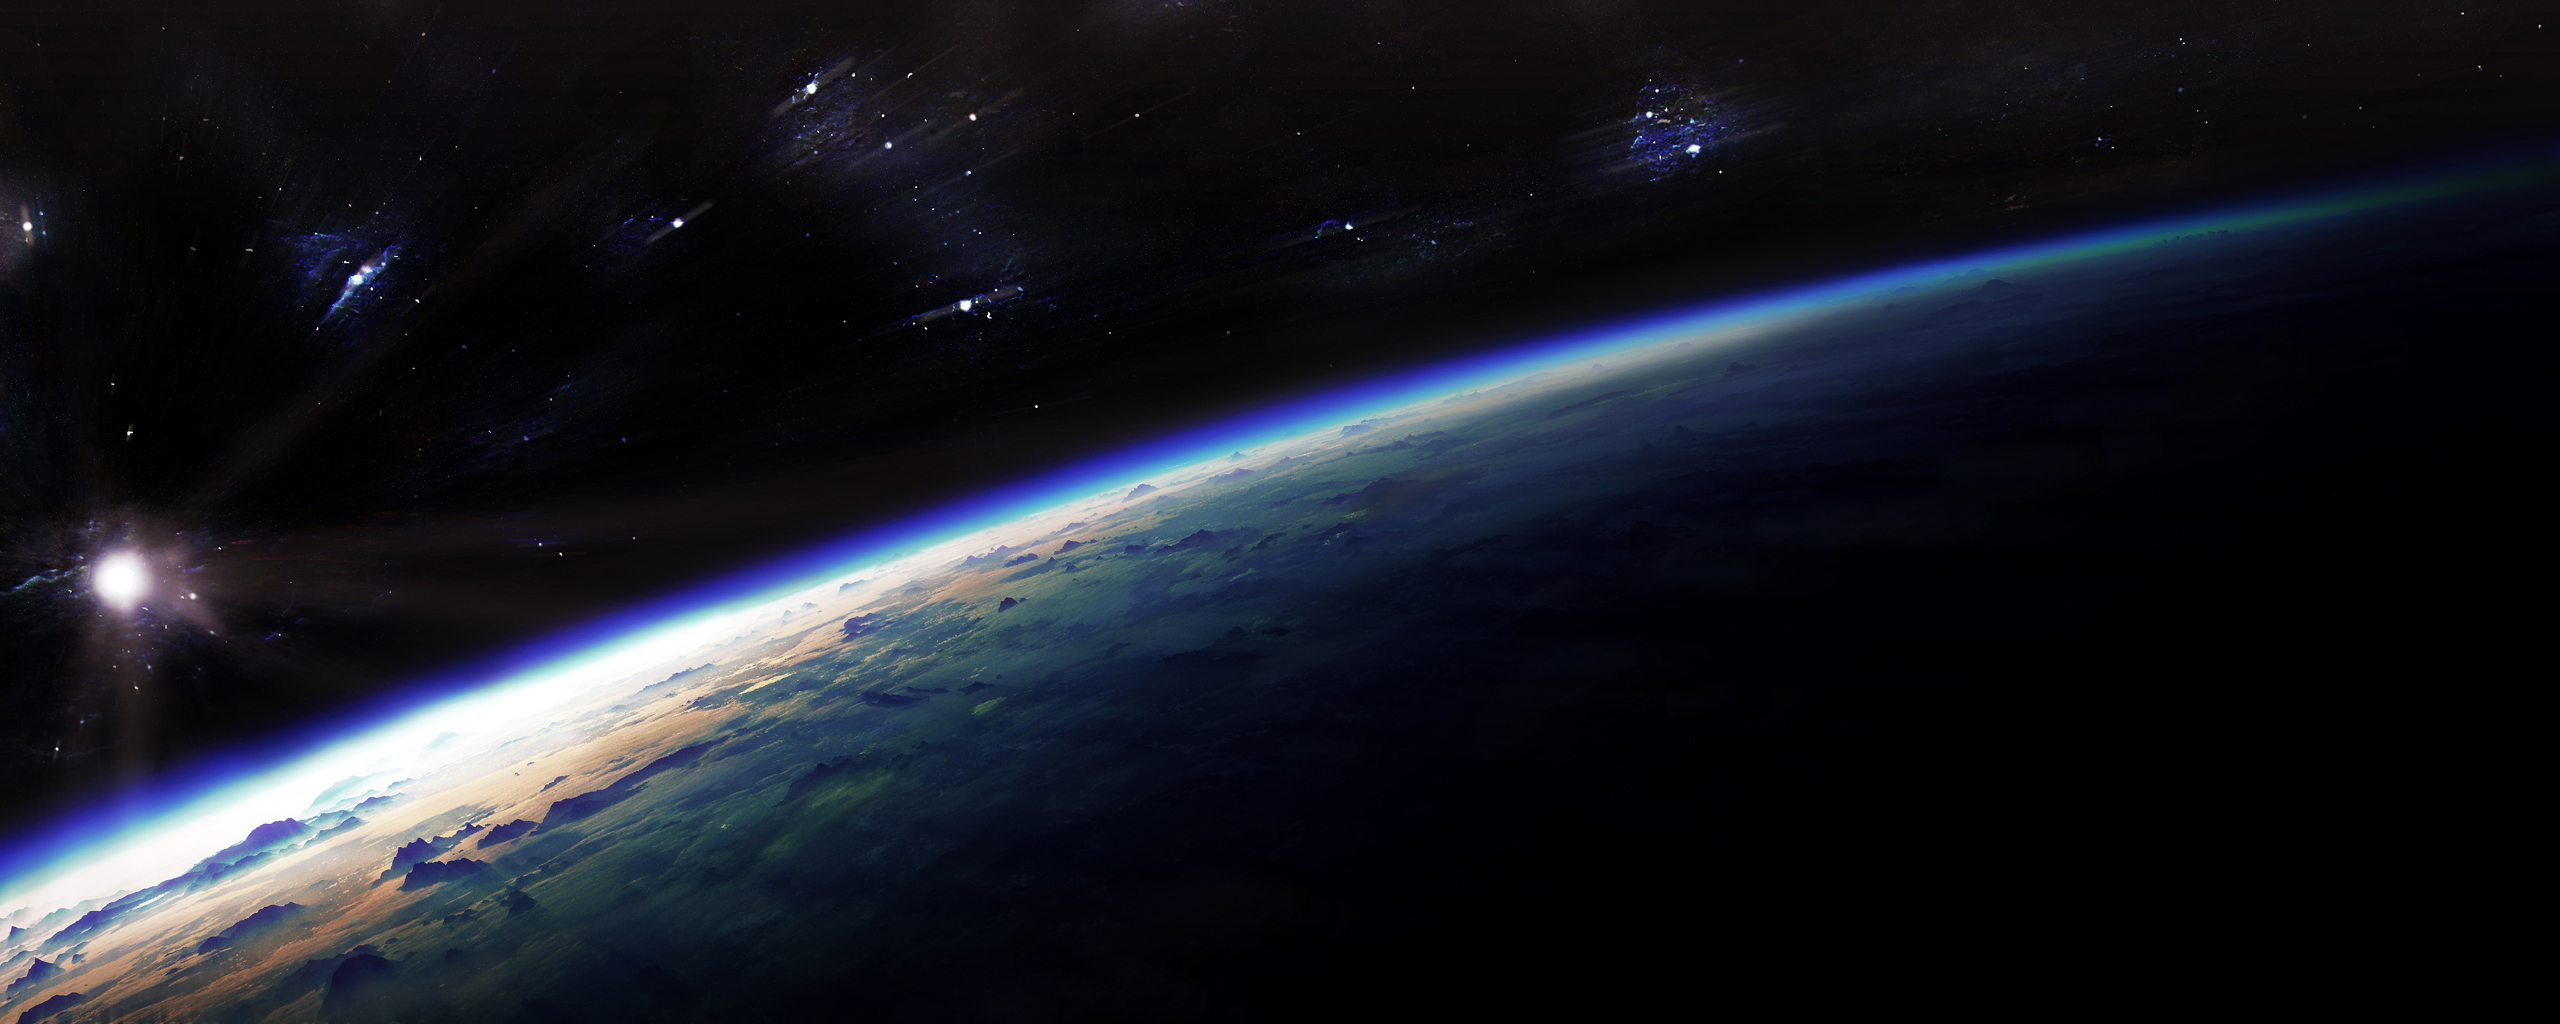 Wallpapers space dual screen earth from 25601024 1128431 space 2560x1024